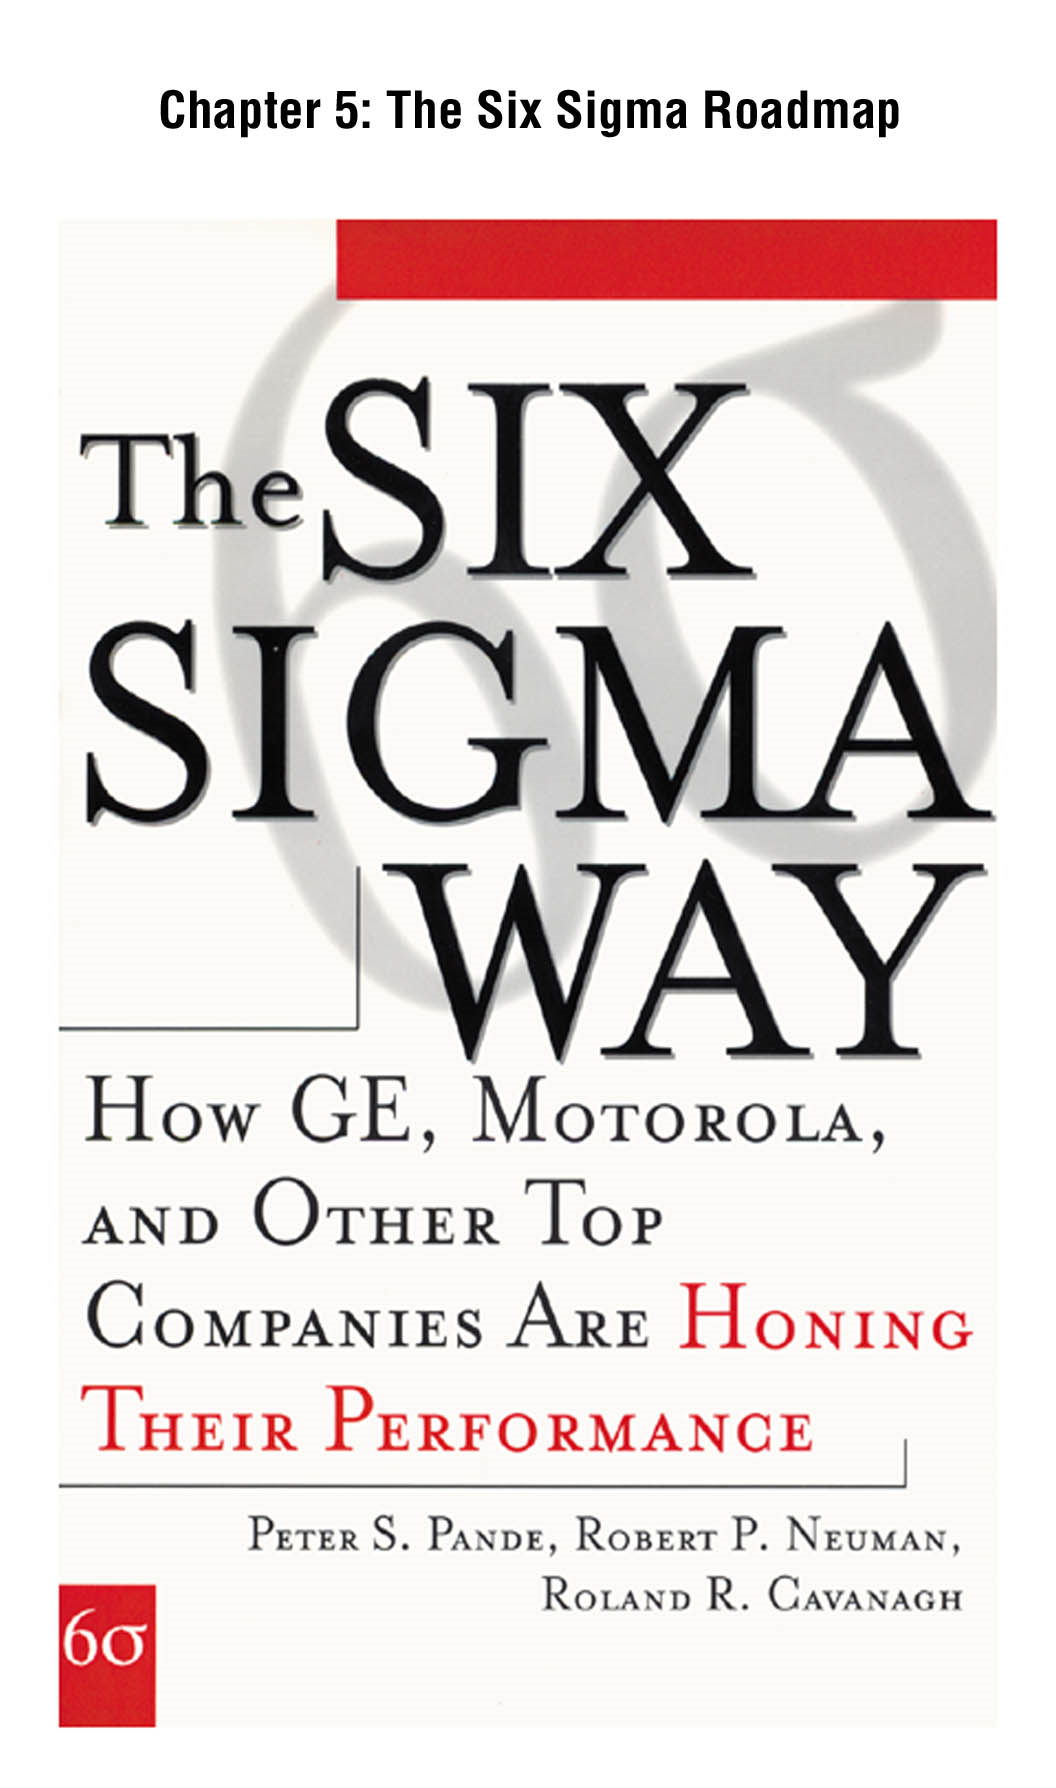 The Six Sigma Way, Chapter 5 - The Six Sigma Roadmap